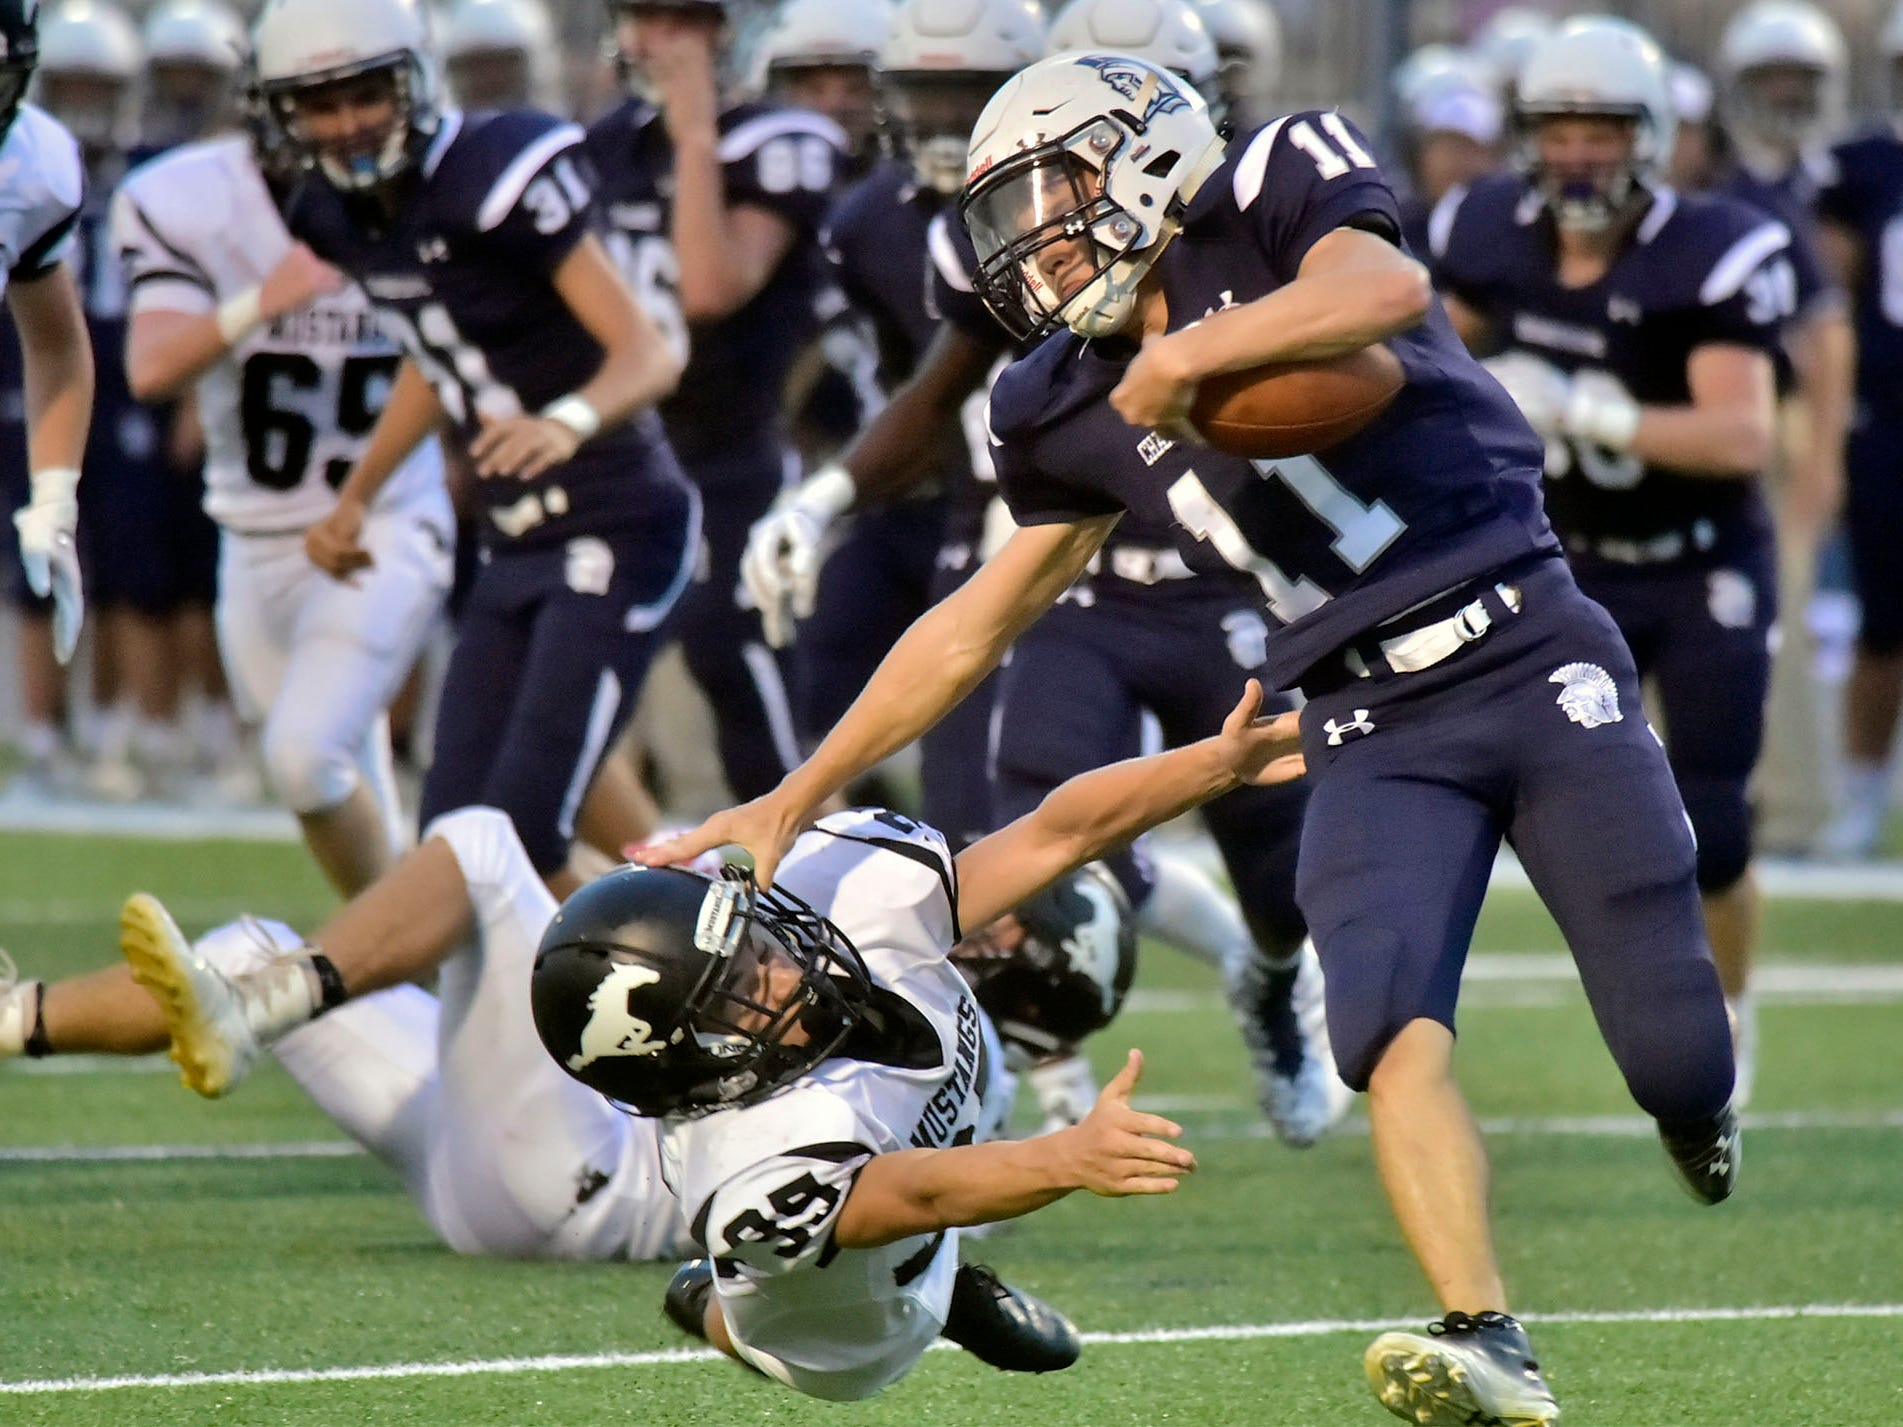 Chambersburg's Keaton Morris runs past South Western's Tyler Higdon for a first down. Chambersburg defeated South Western 51-26 in football on Friday, Aug. 31, 2018.